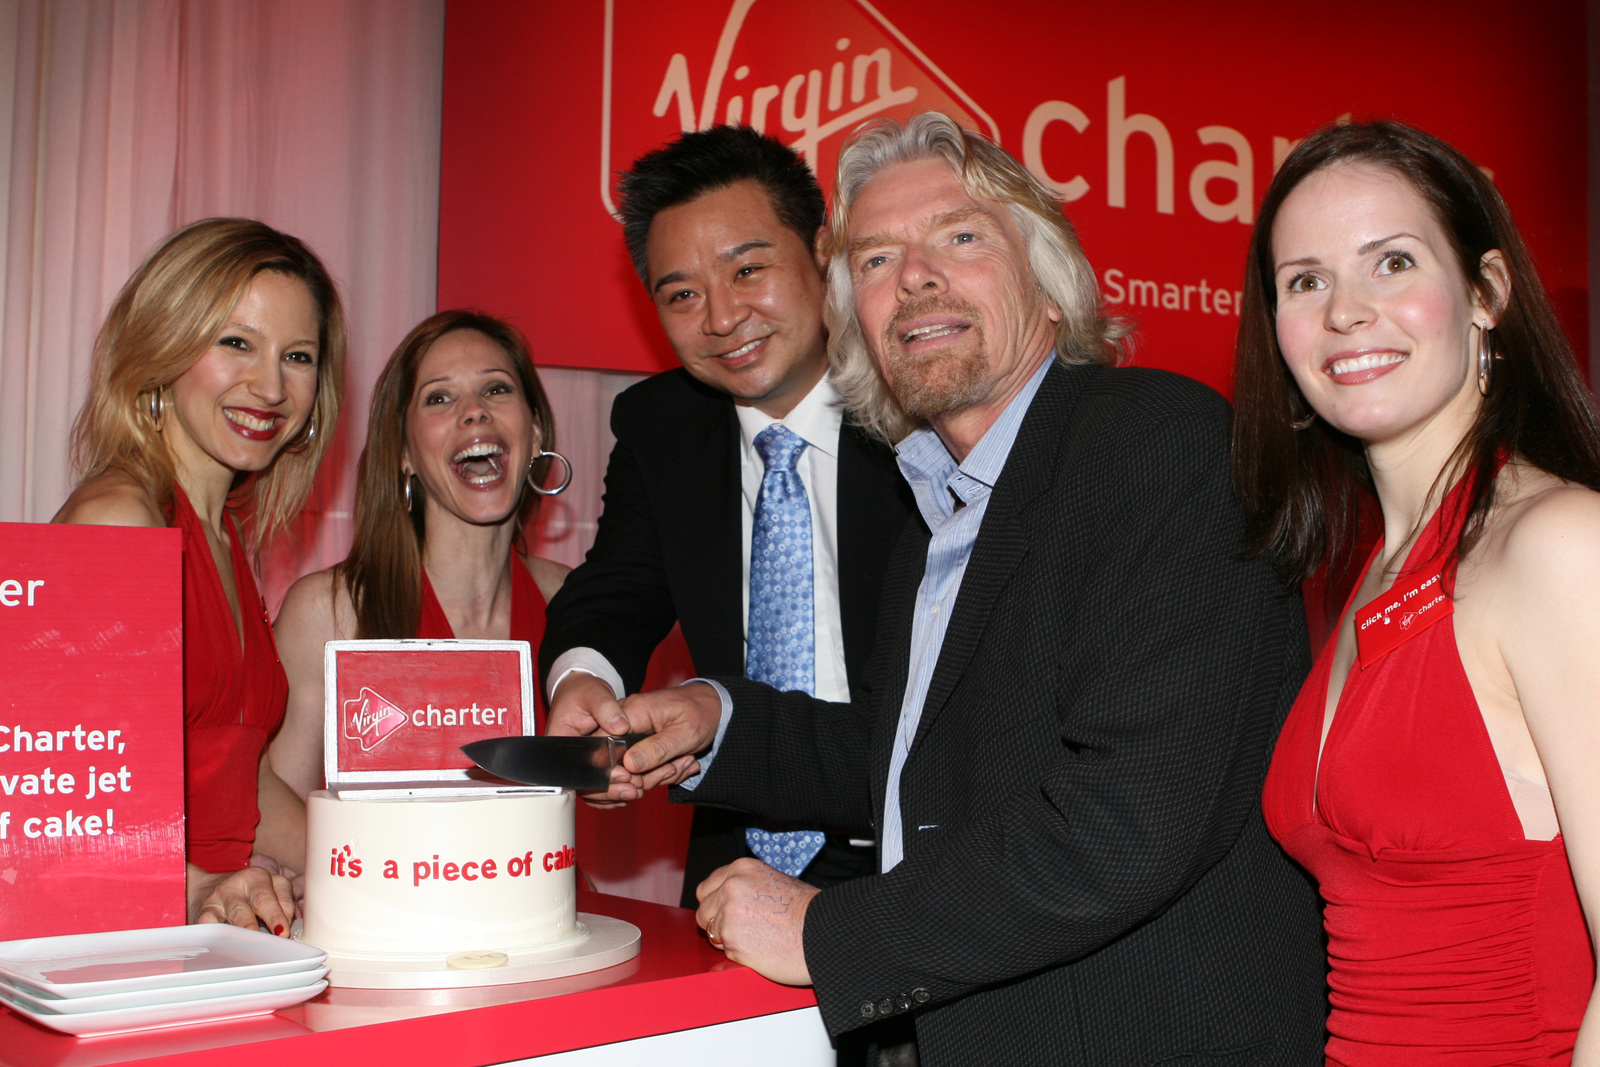 Virgin Charter Launches Online Marketplace for Air Charter Flights